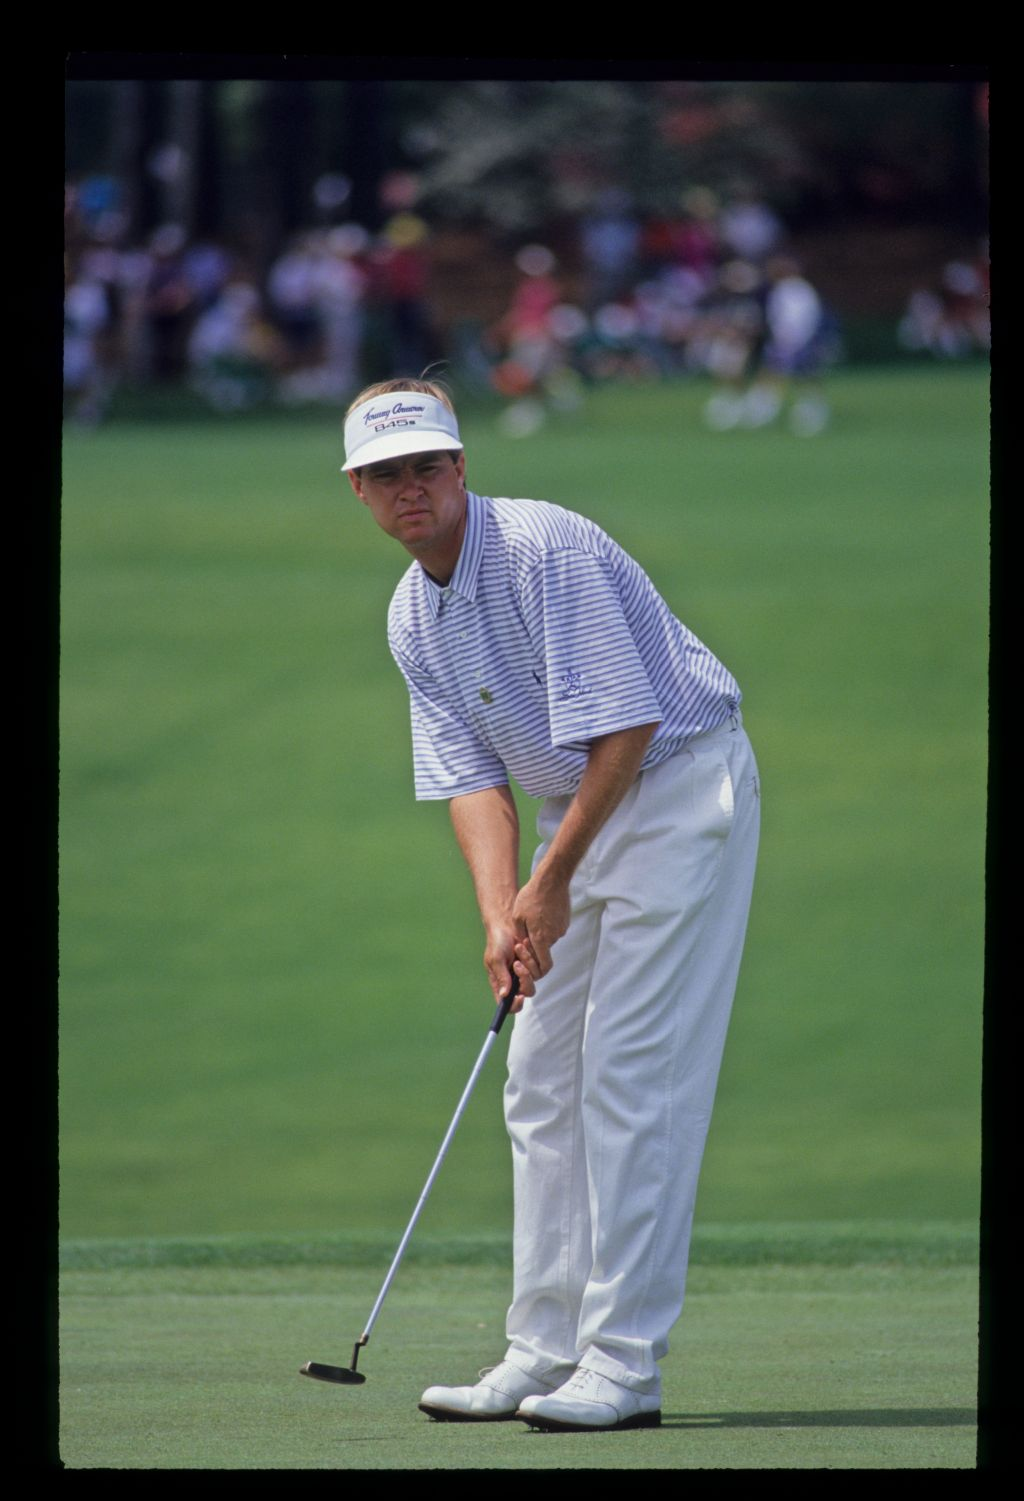 Davis Love III putting during the 1992 Masters